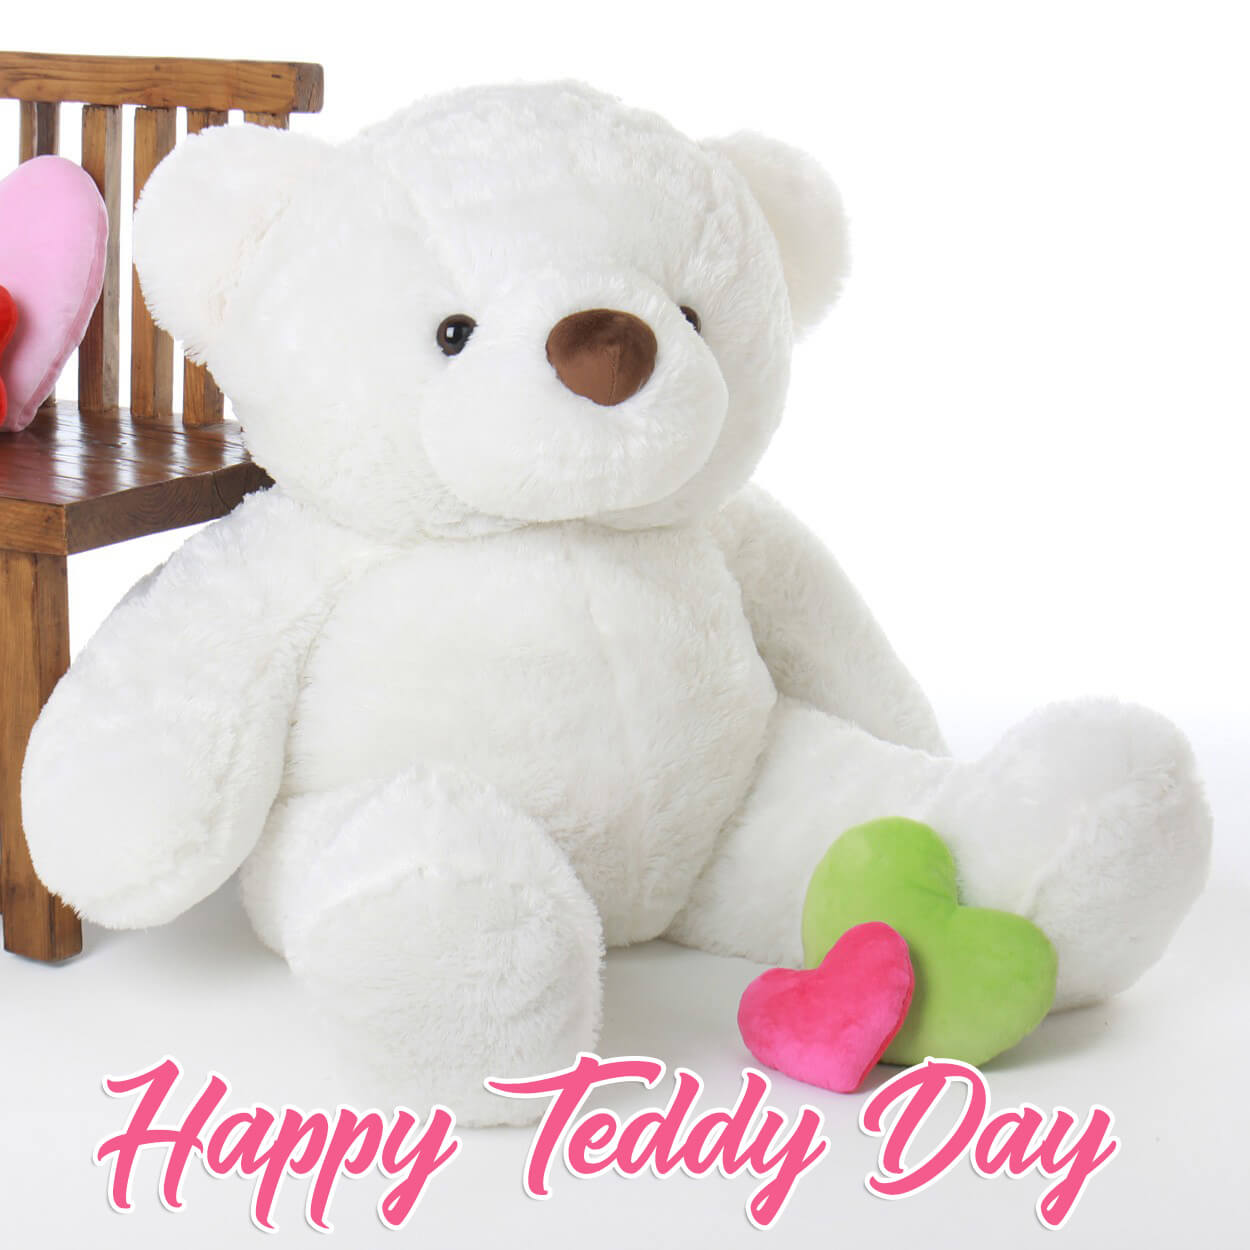 happy teddy day wishes white bear image february 10th hd wallpaper